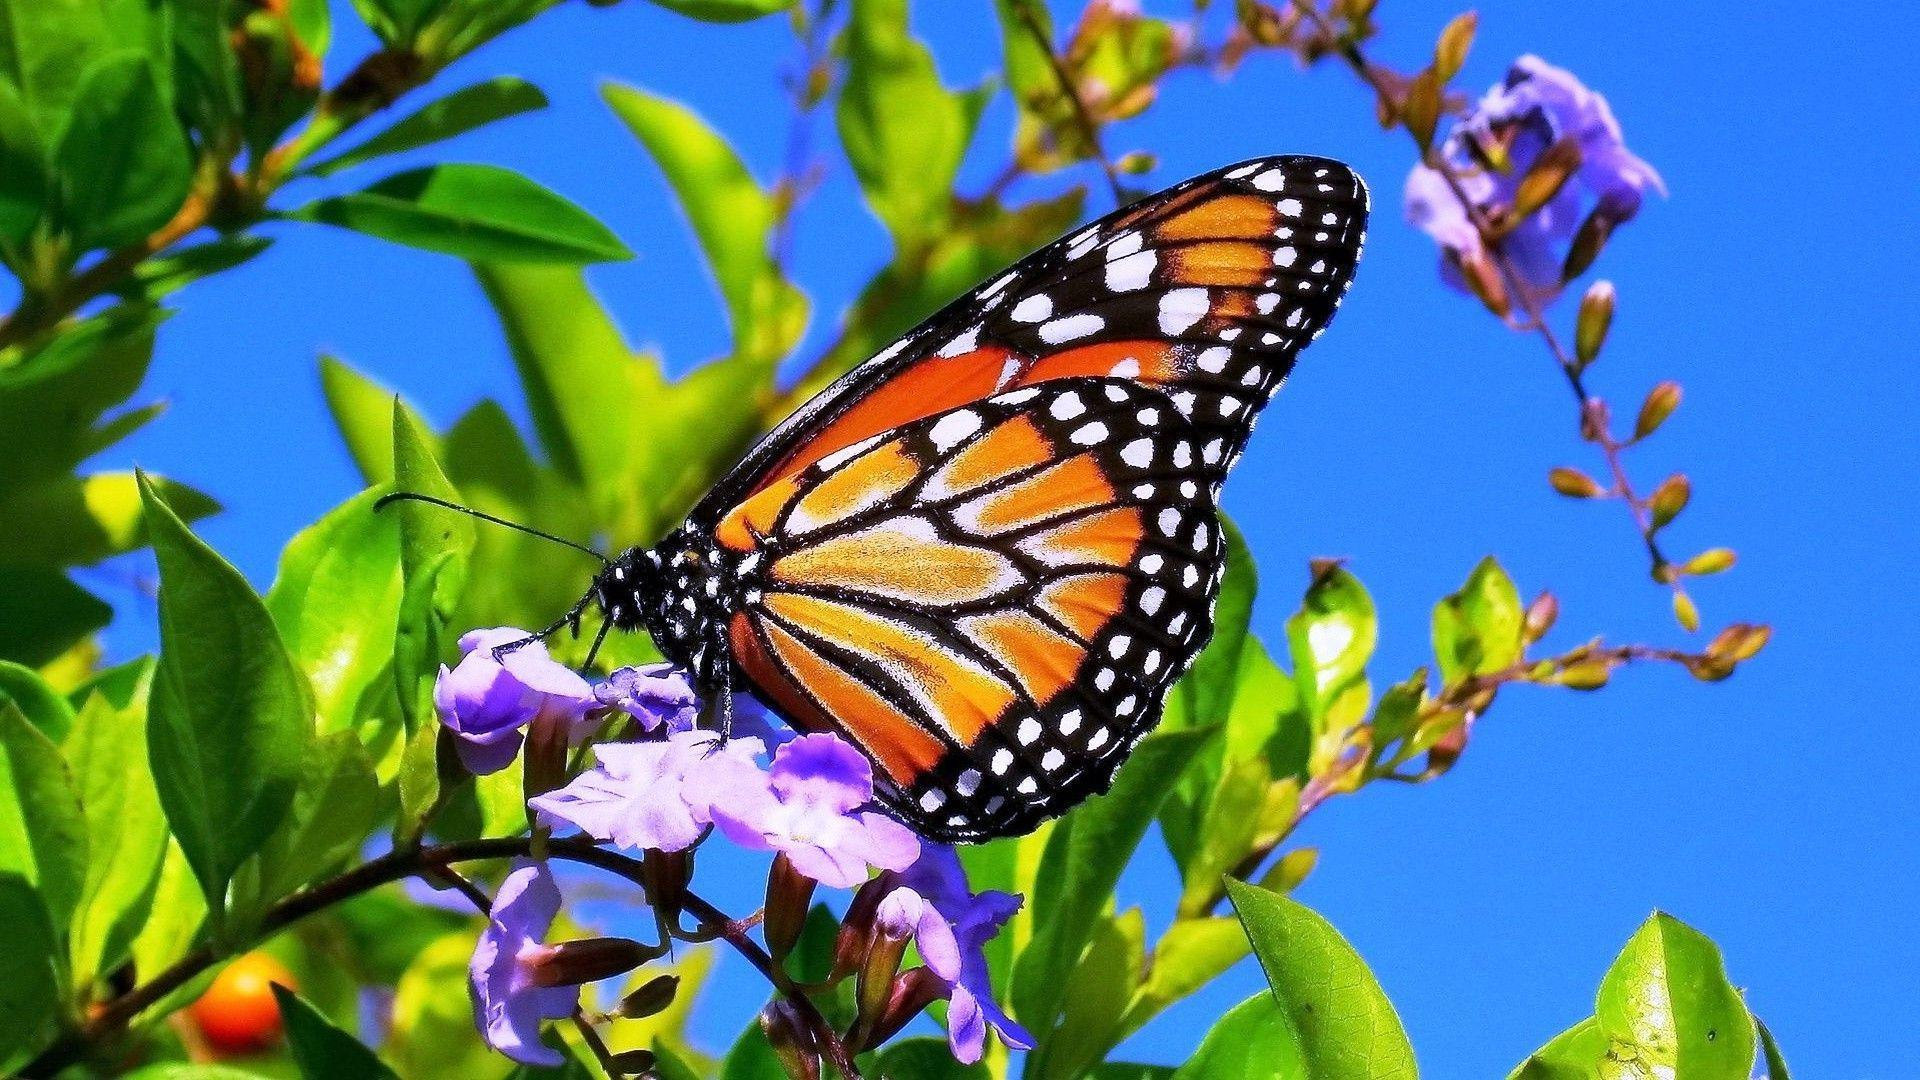 Butterfly And Flower Wallpapers - Wallpaper Cave - photo#23